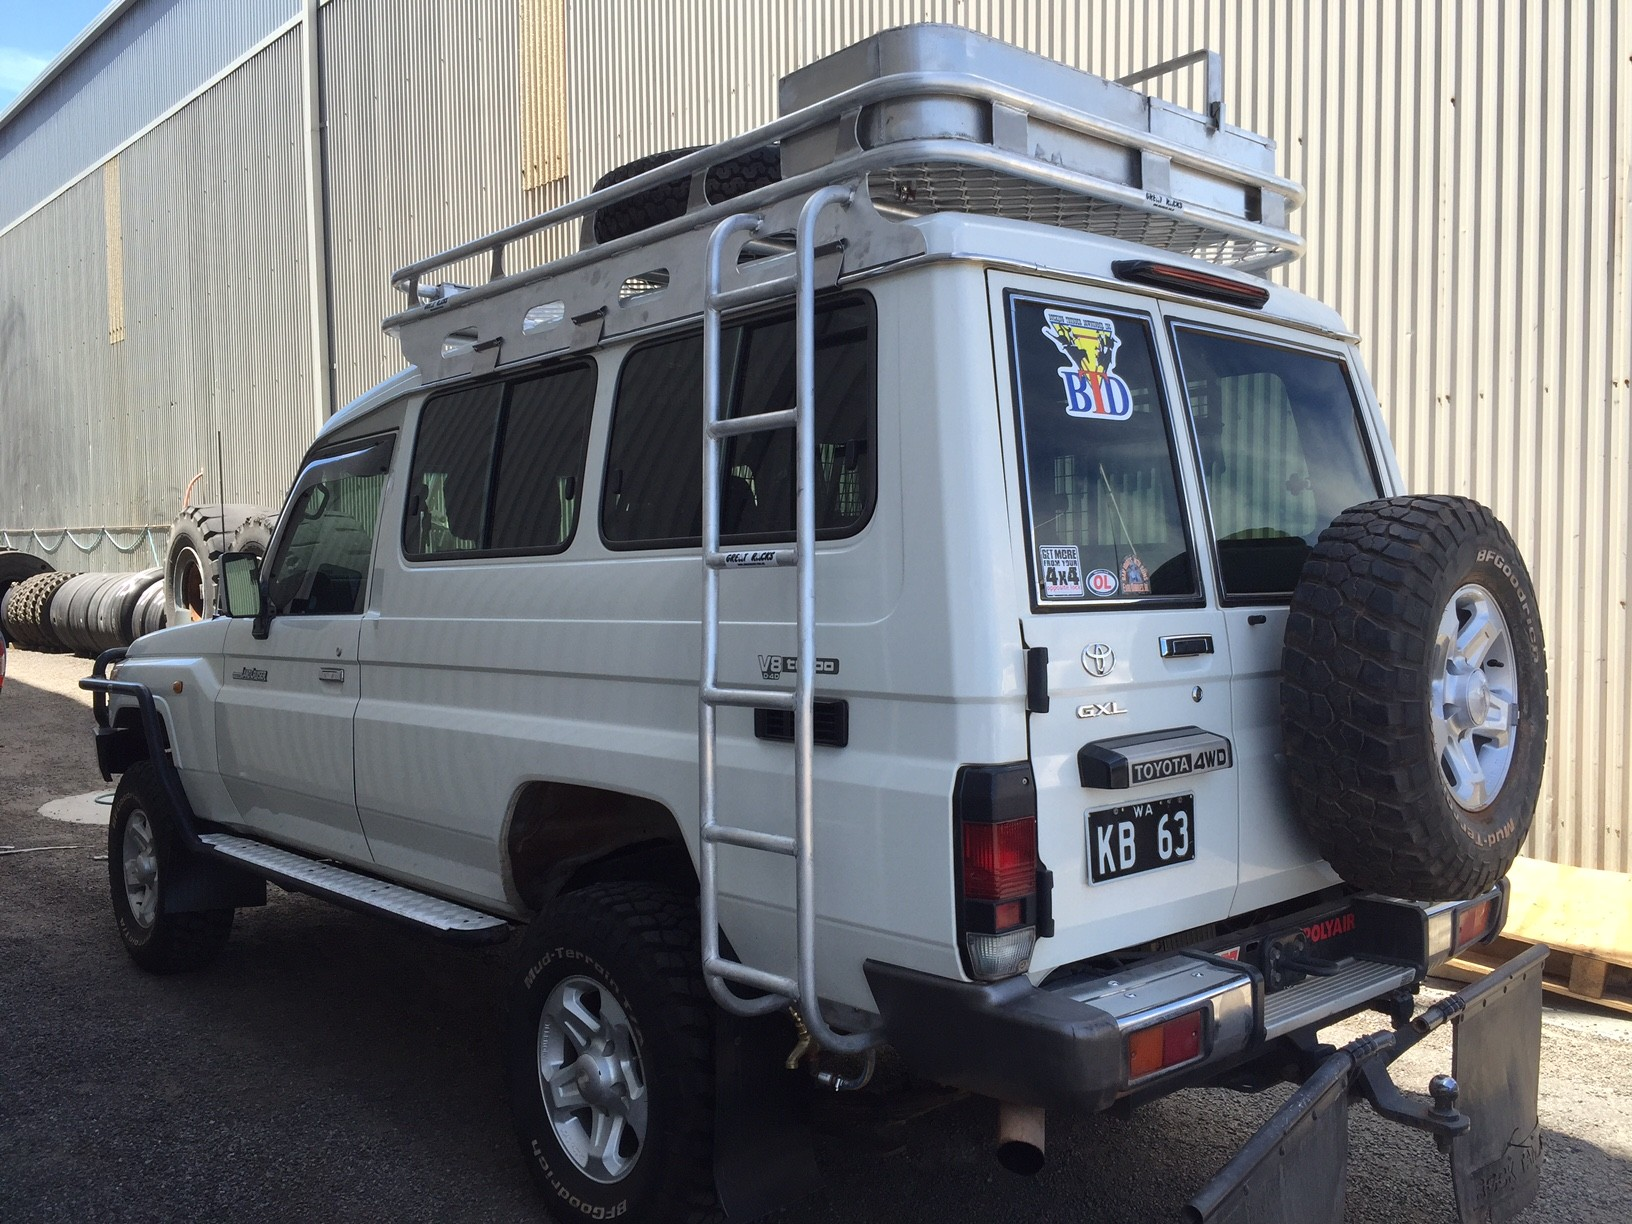 Wagon Roof Racks | Get a FREE Quote | Great Racks